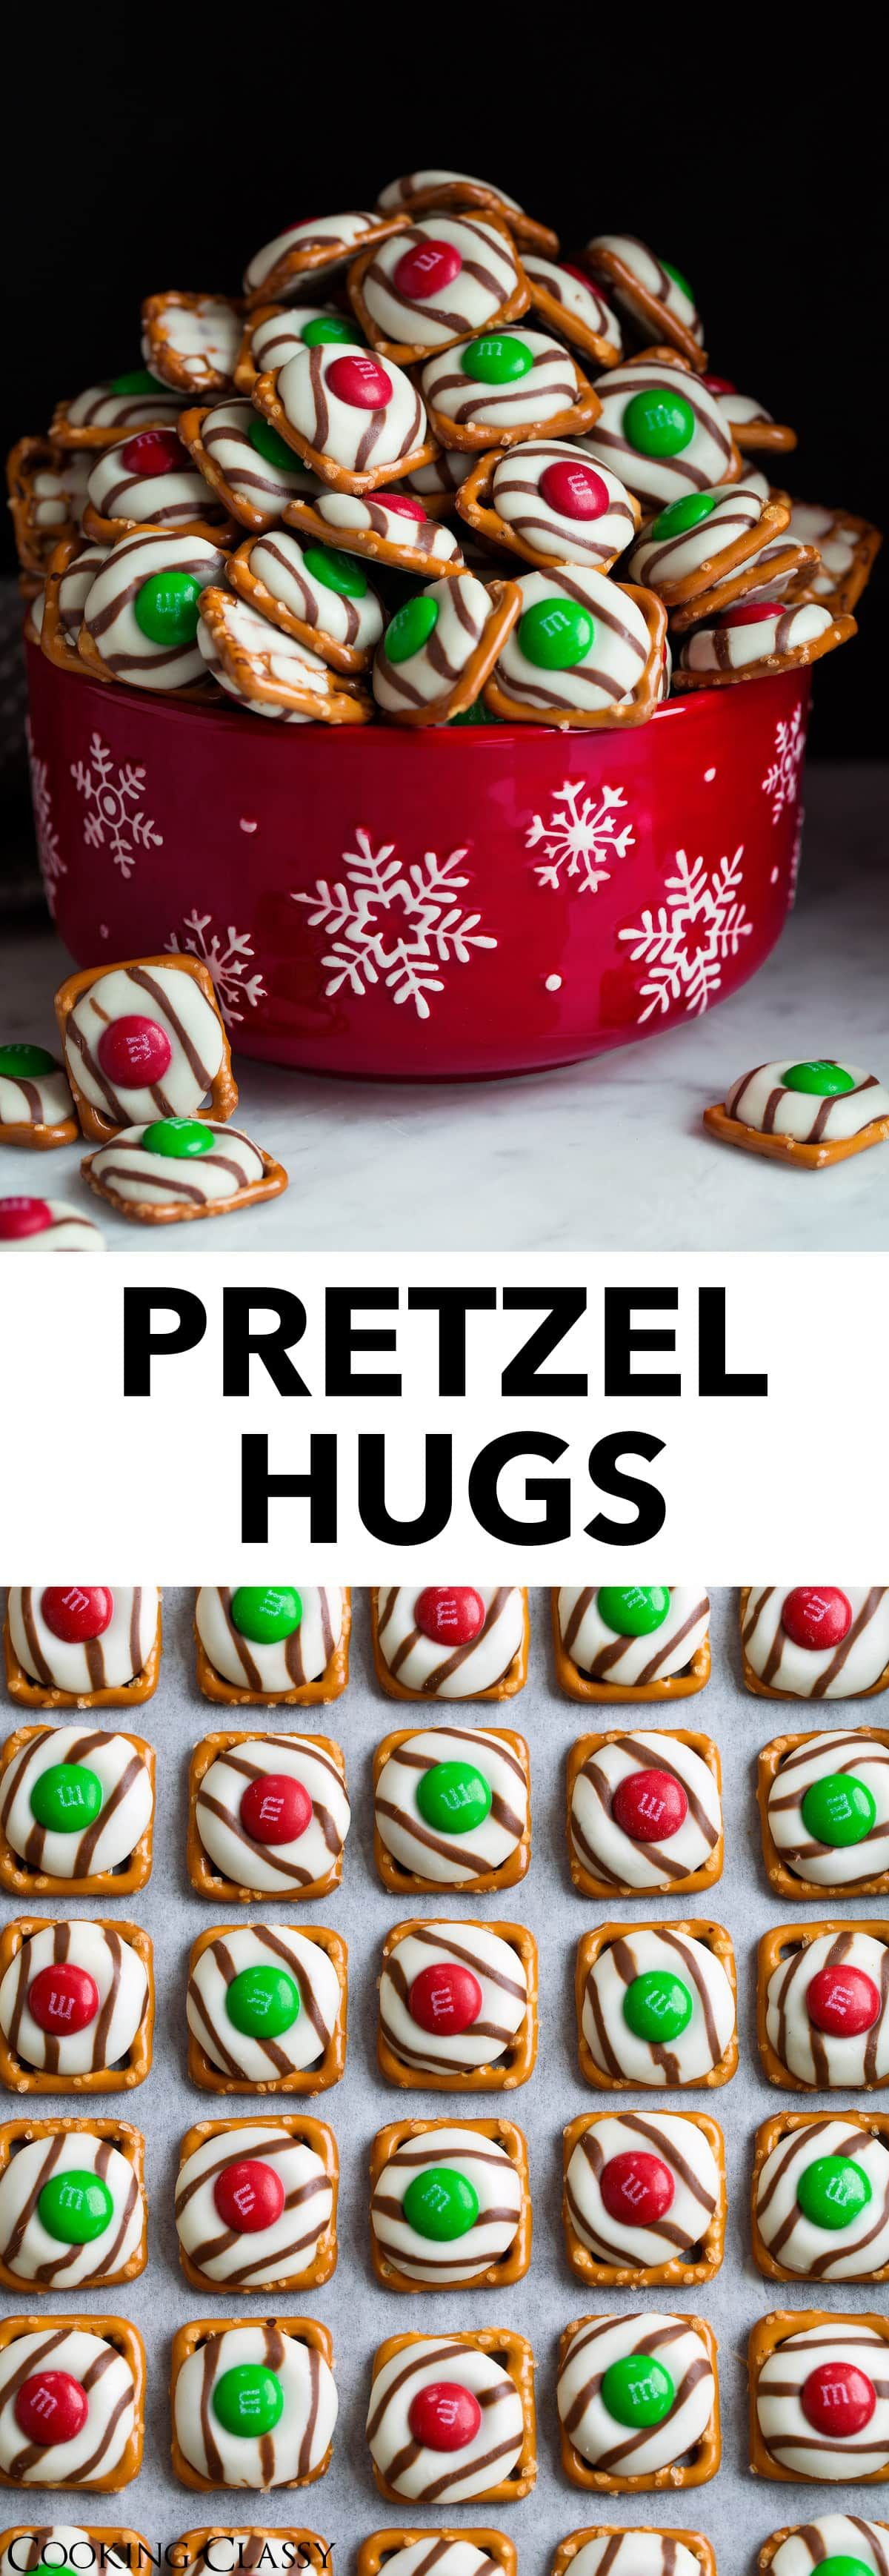 Pretzel M&M Hugs - these are the perfect treats for Christmas gifts or parties. They only need 3 ingredients, they take no time at all to make, they look so pretty and festive and of course they're incredibly delicious!  chocolatepretzels  christmas  christmastreat  partyideas  giftideas via @cookingclassy